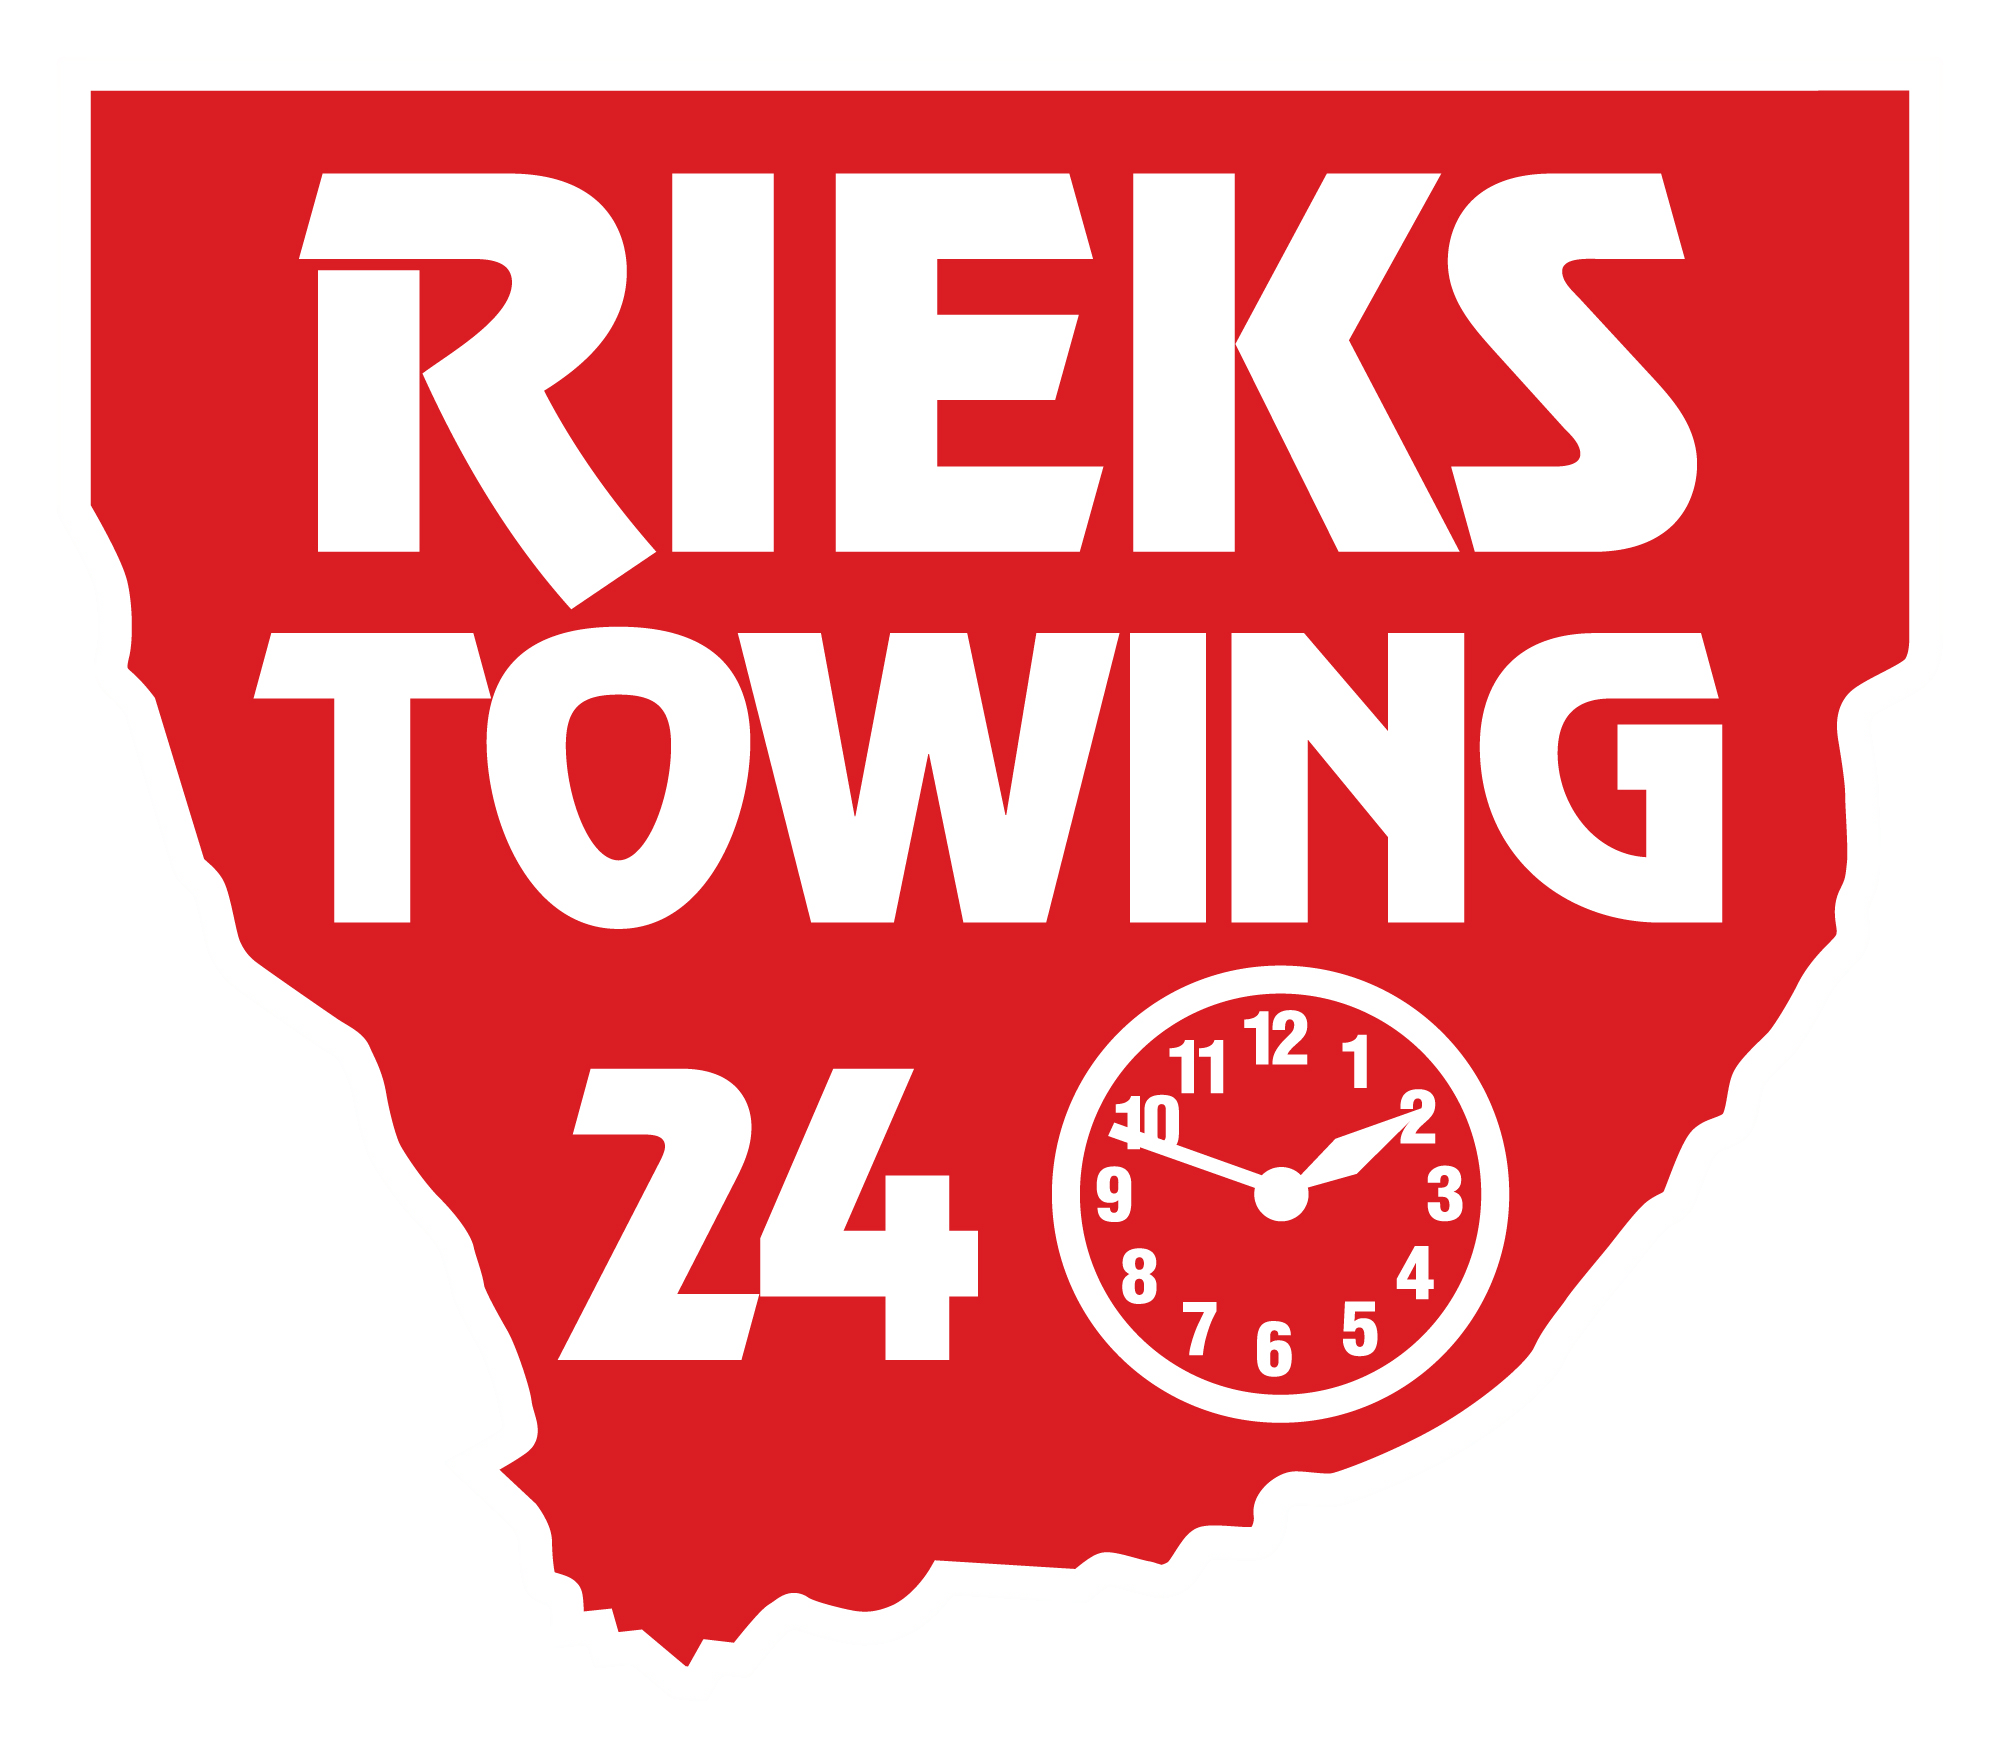 Rieks_logo_clipped_rev_2